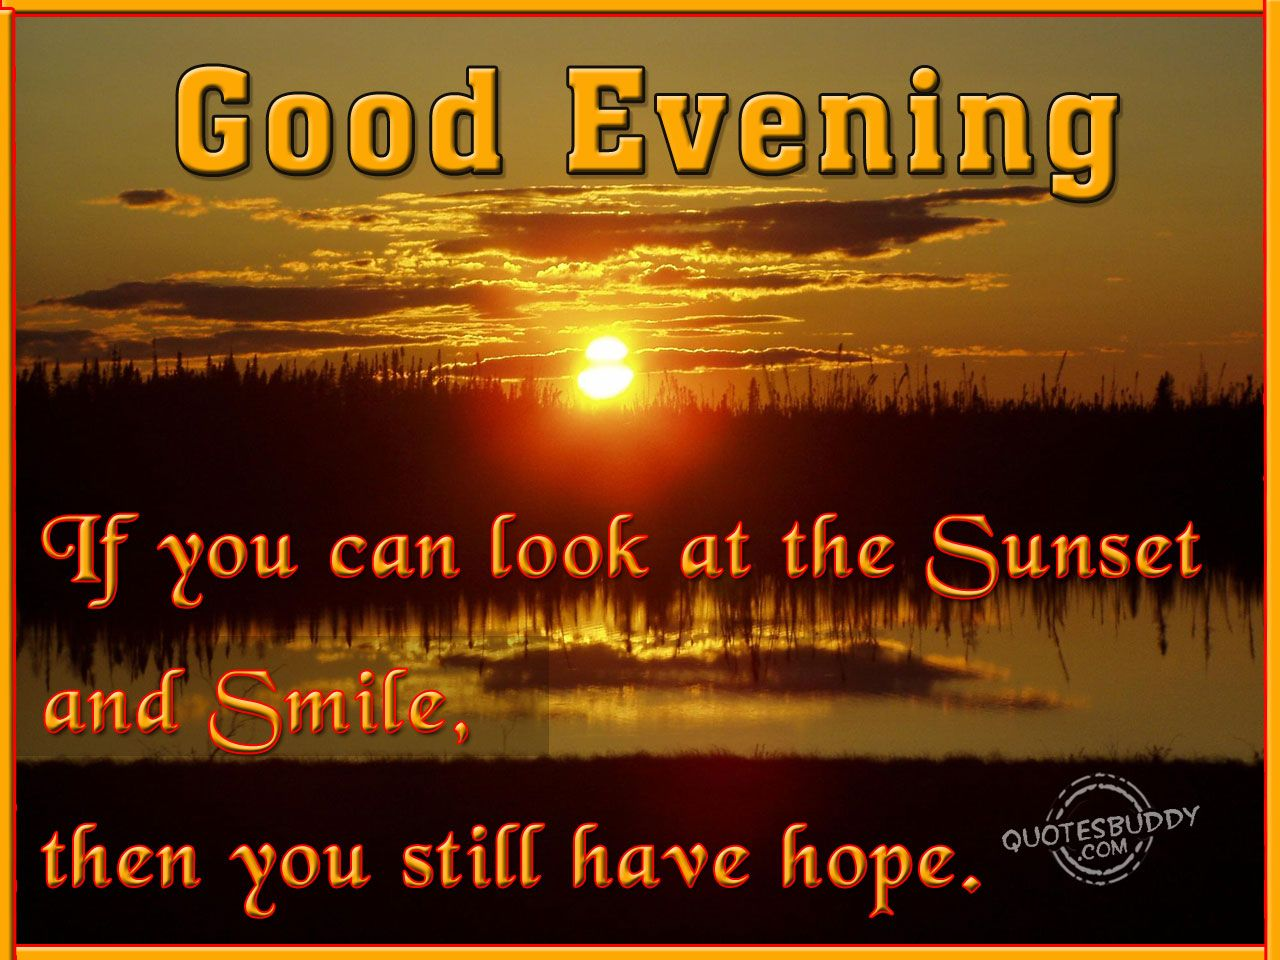 Great Evening Quotes Good Evening Quotes Graphics Sunrises And